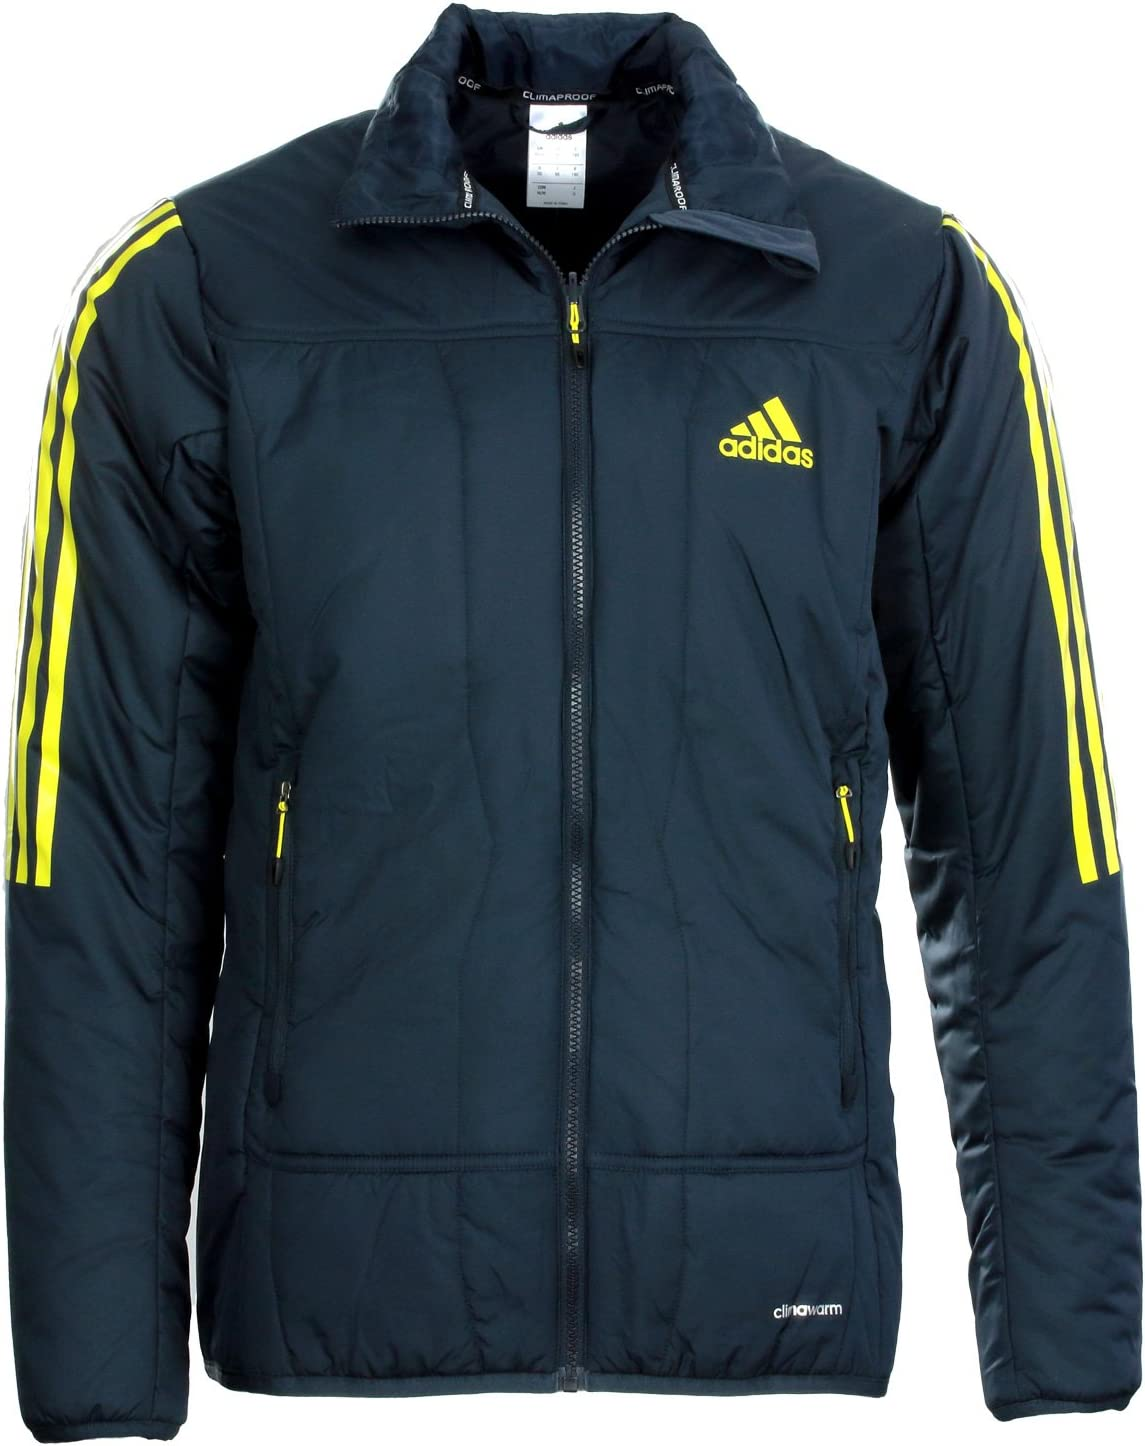 Adidas, giacca Event M 3 in1 Climaproof Storm , antracite